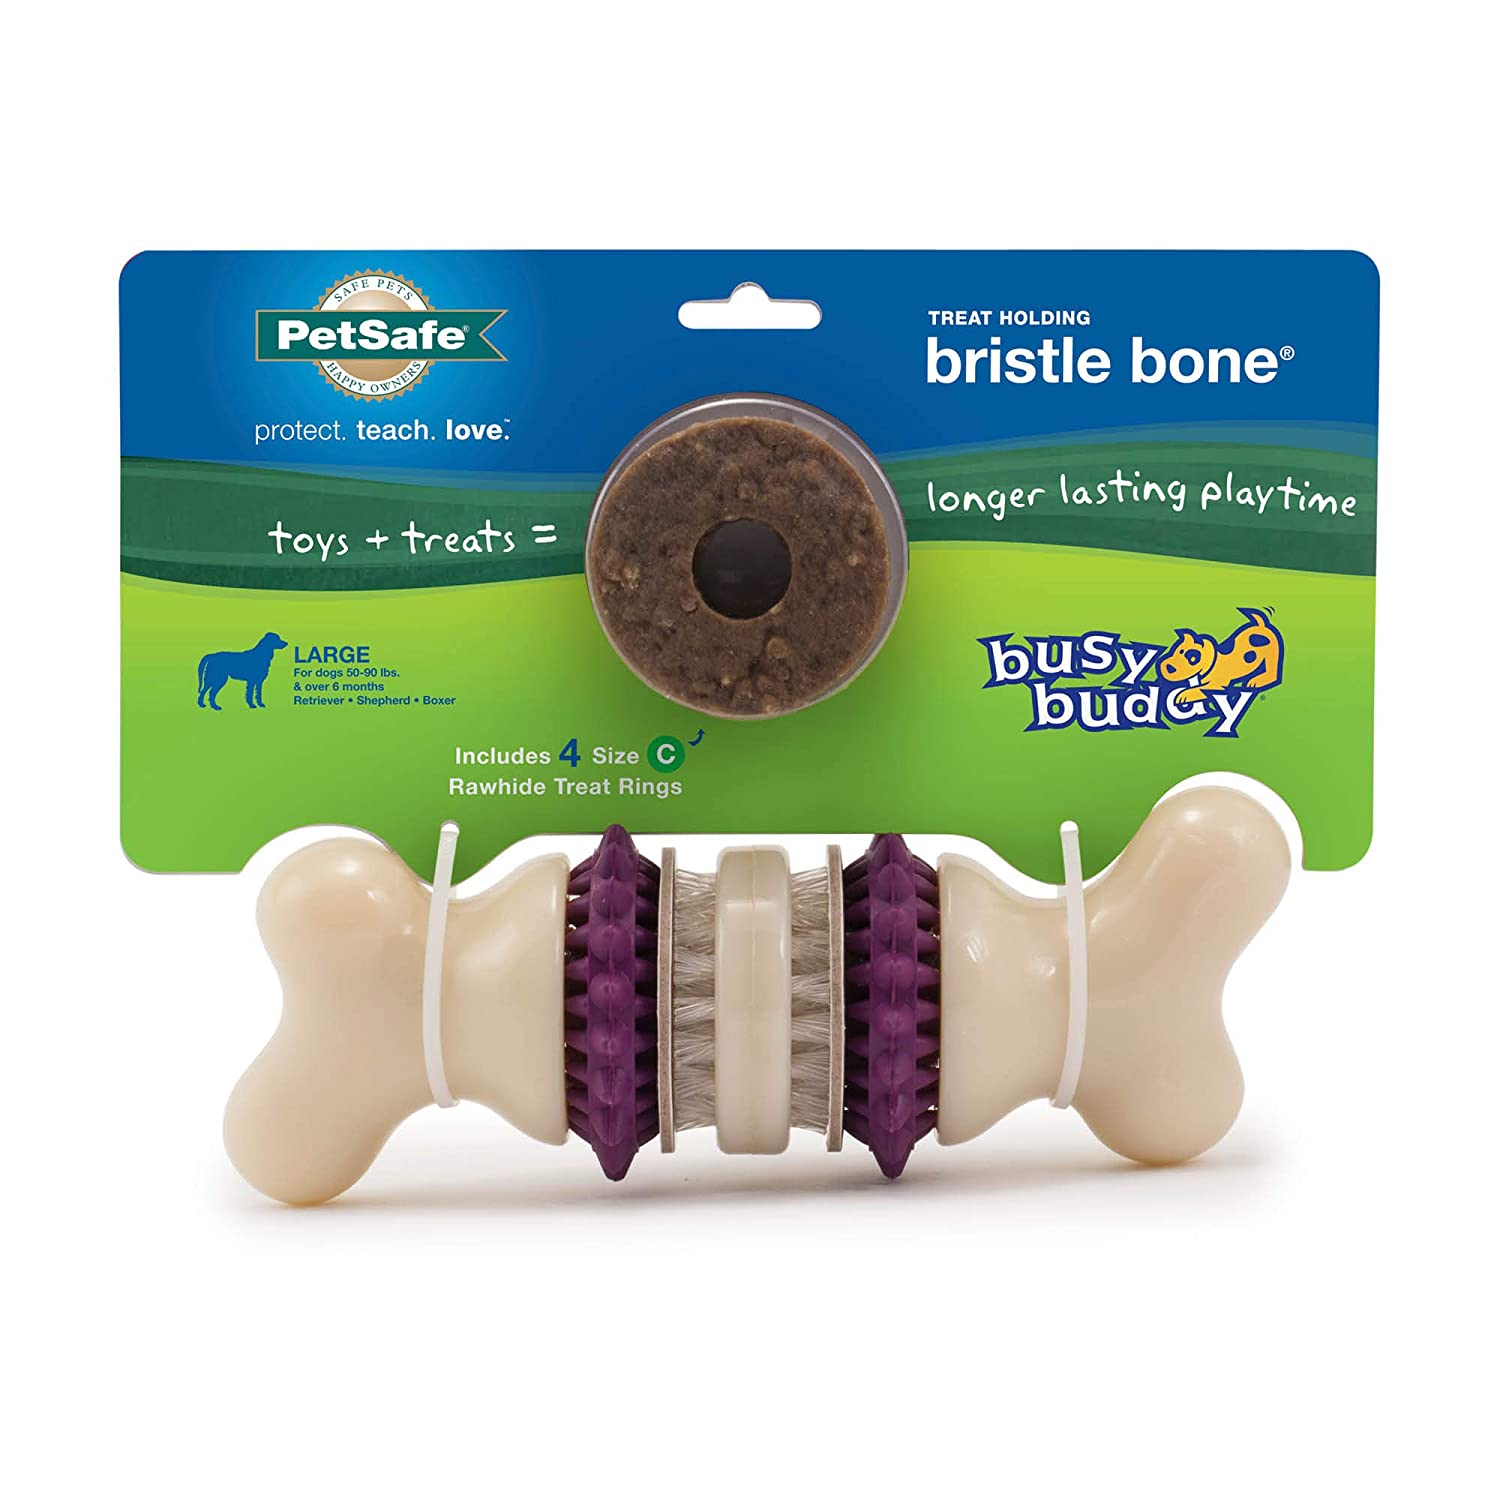 PetSafe Busy Buddy Bristle Bone Chew Toy for Dogs � Strong Chewers � Helps Clean Teeth � Extra Small, Small, Medium, Large